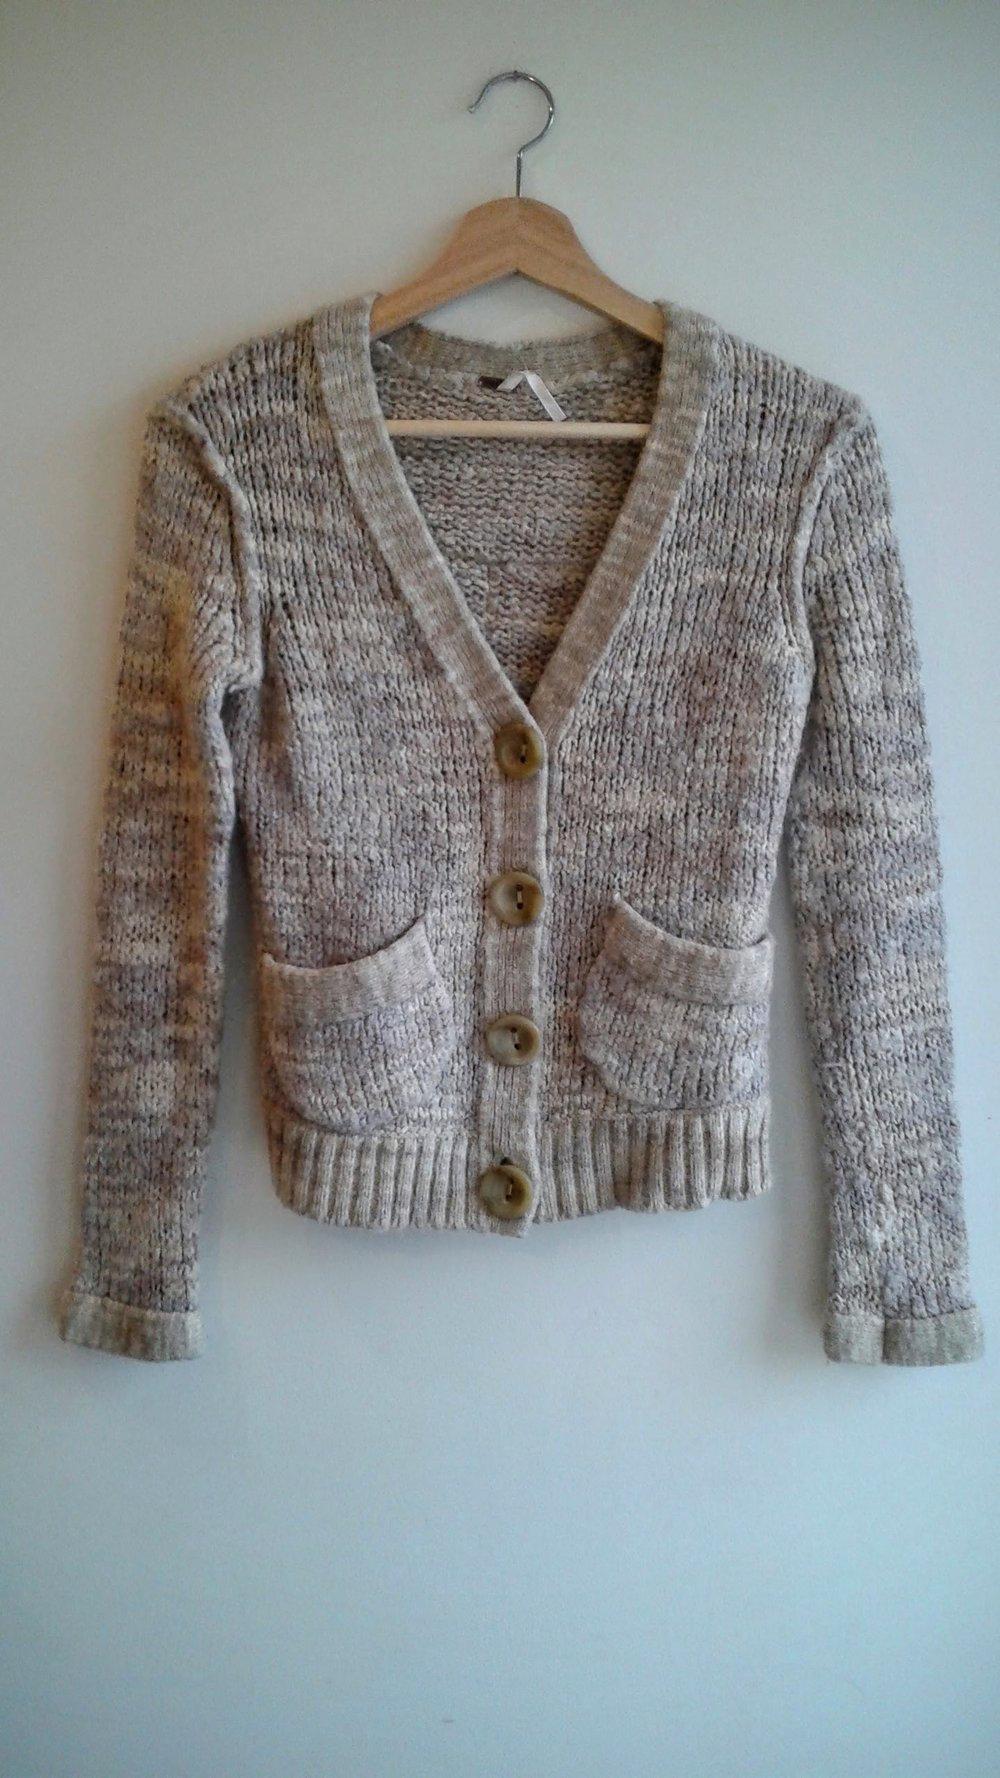 Free People sweater; Size S, $40